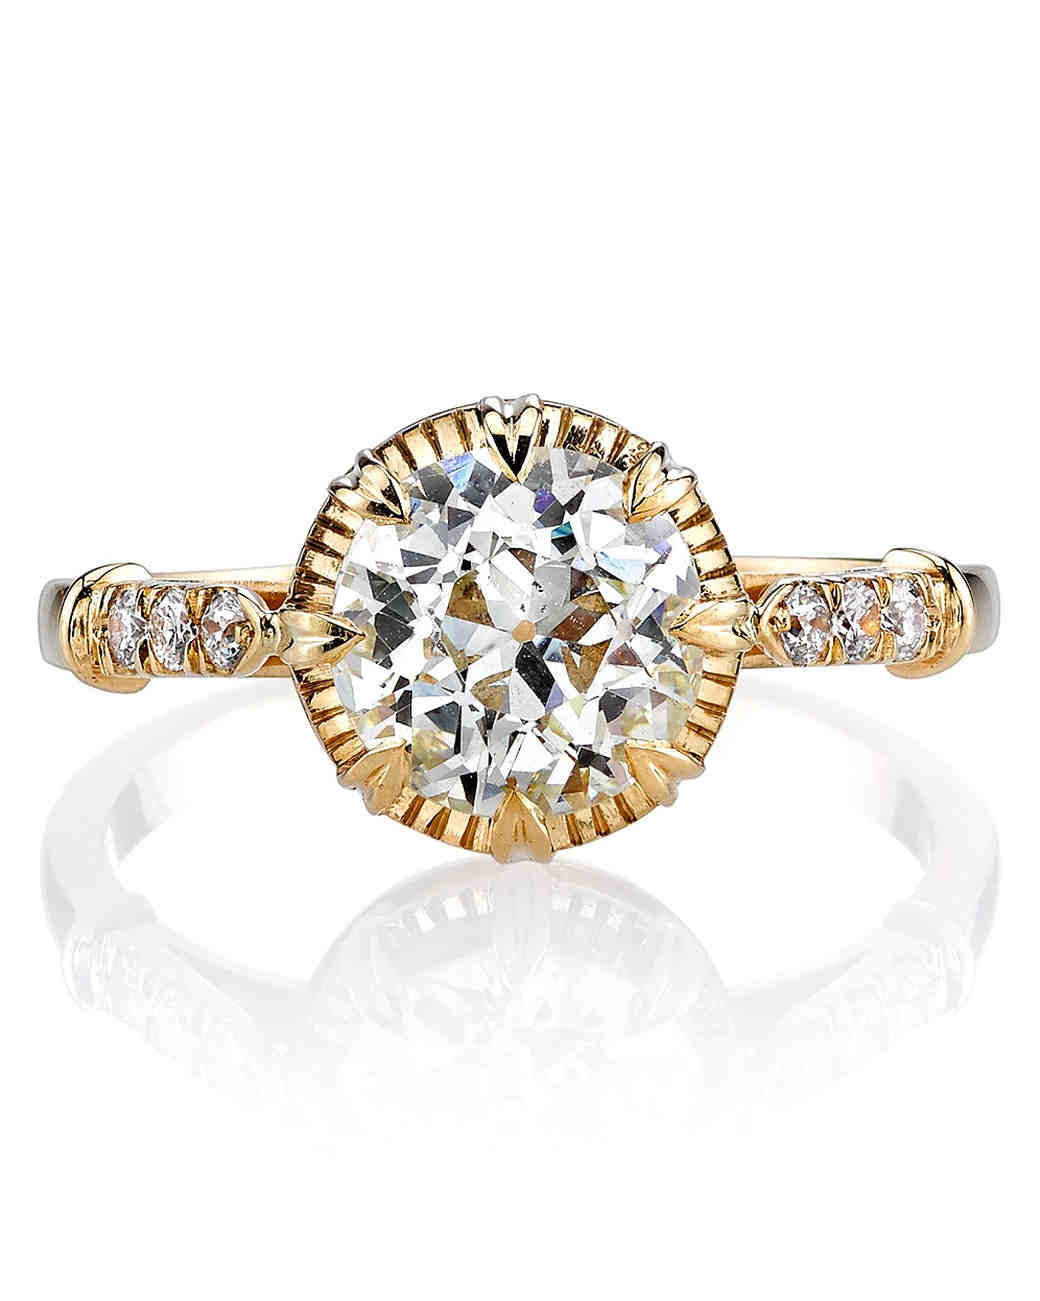 Single Stone Arielle Euro-cut yellow gold engagement ring